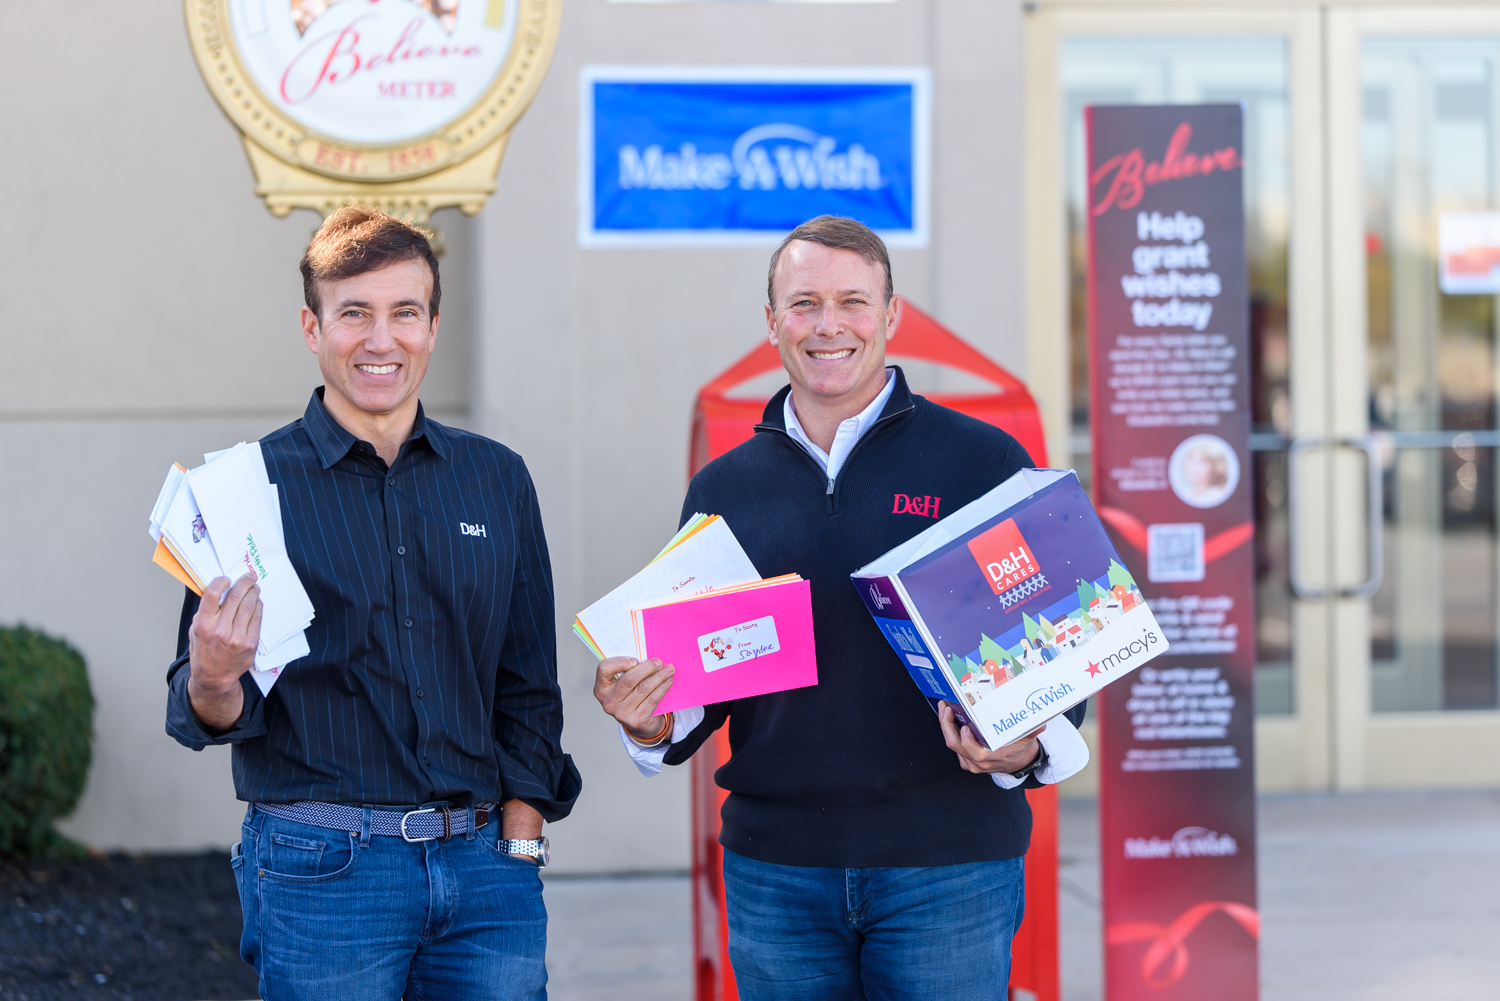 """D&H Distributing's Co-Presidents Michael Schwab (L) and Dan Schwab deliver """"Letters to Santa"""" at Macy's Camp Hill to benefit Make-A-Wish Philadelphia, Delaware & Susquehanna Valley, part of the Macy's Believe holiday fundraiser."""